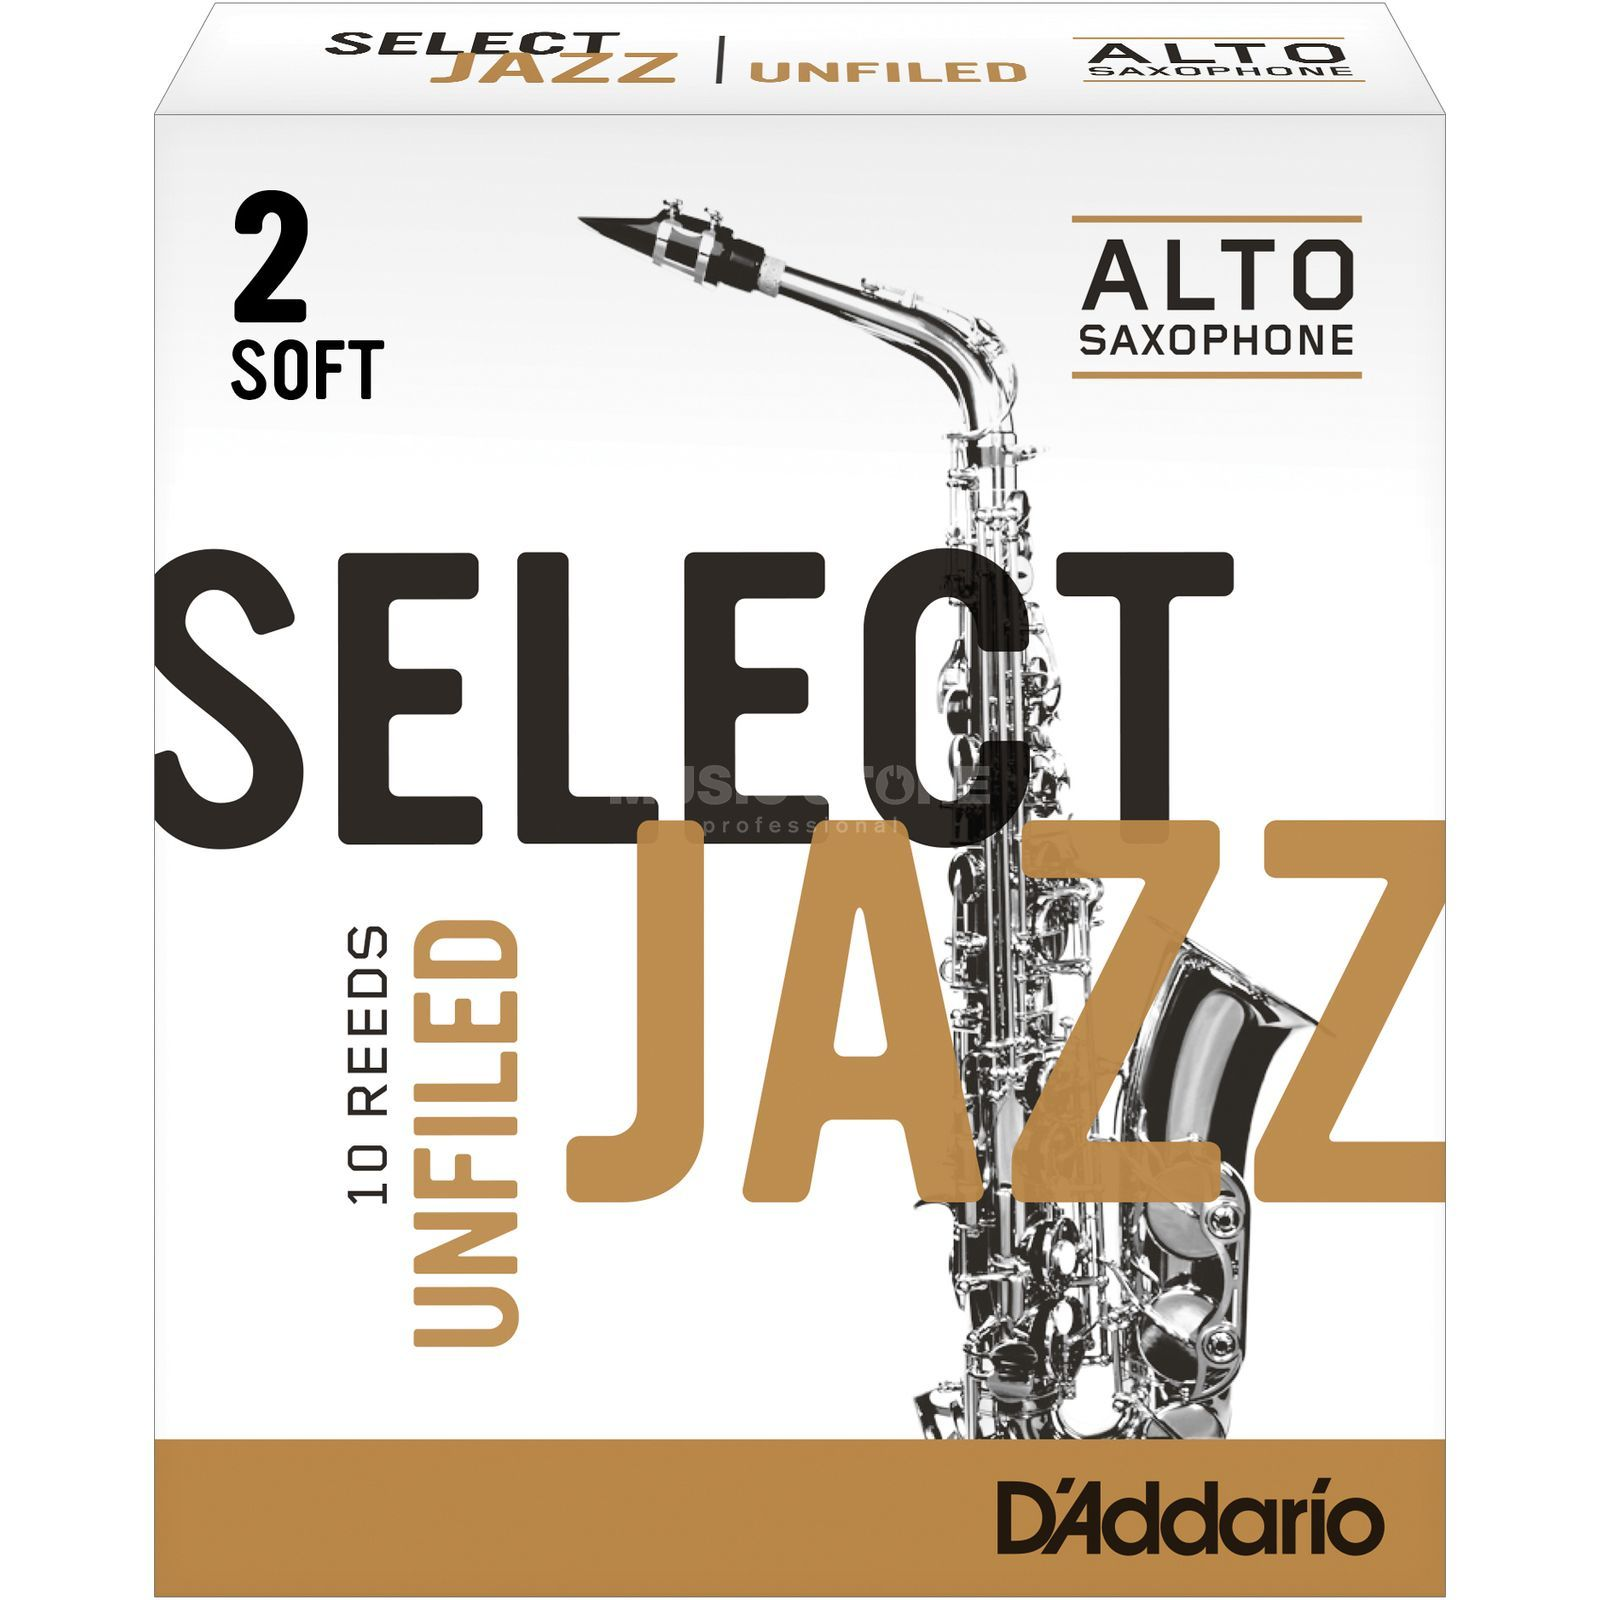 D'Addario Woodwinds Alto Sax Reeds 2S Unfiled Box of 10 Product Image